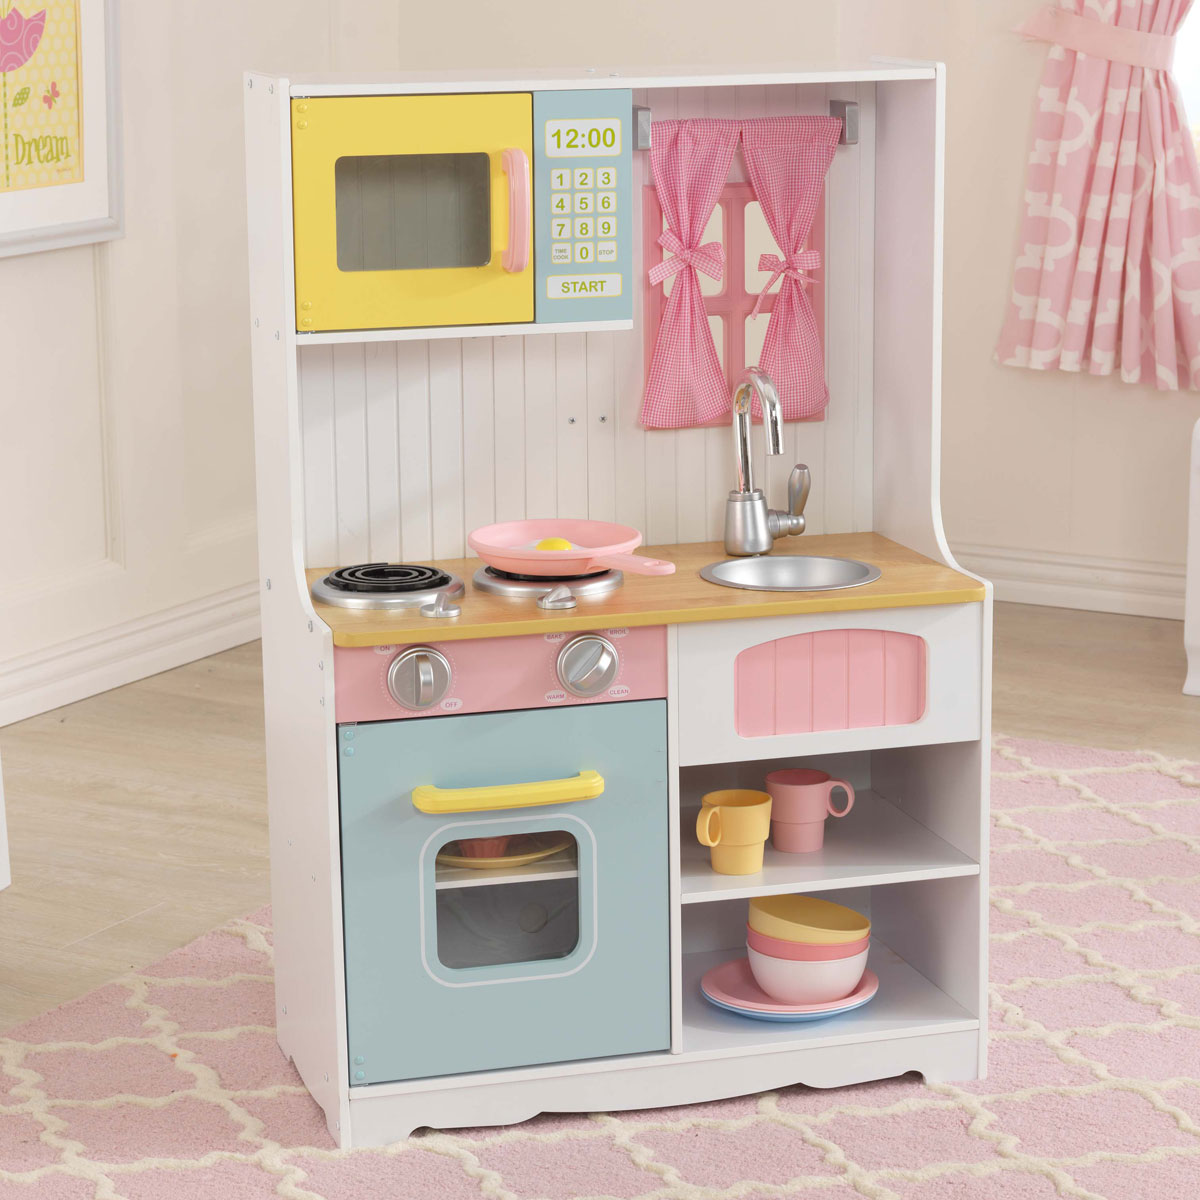 Kidkraft cuisine pastel country 53354 pirum for Cuisine kidkraft